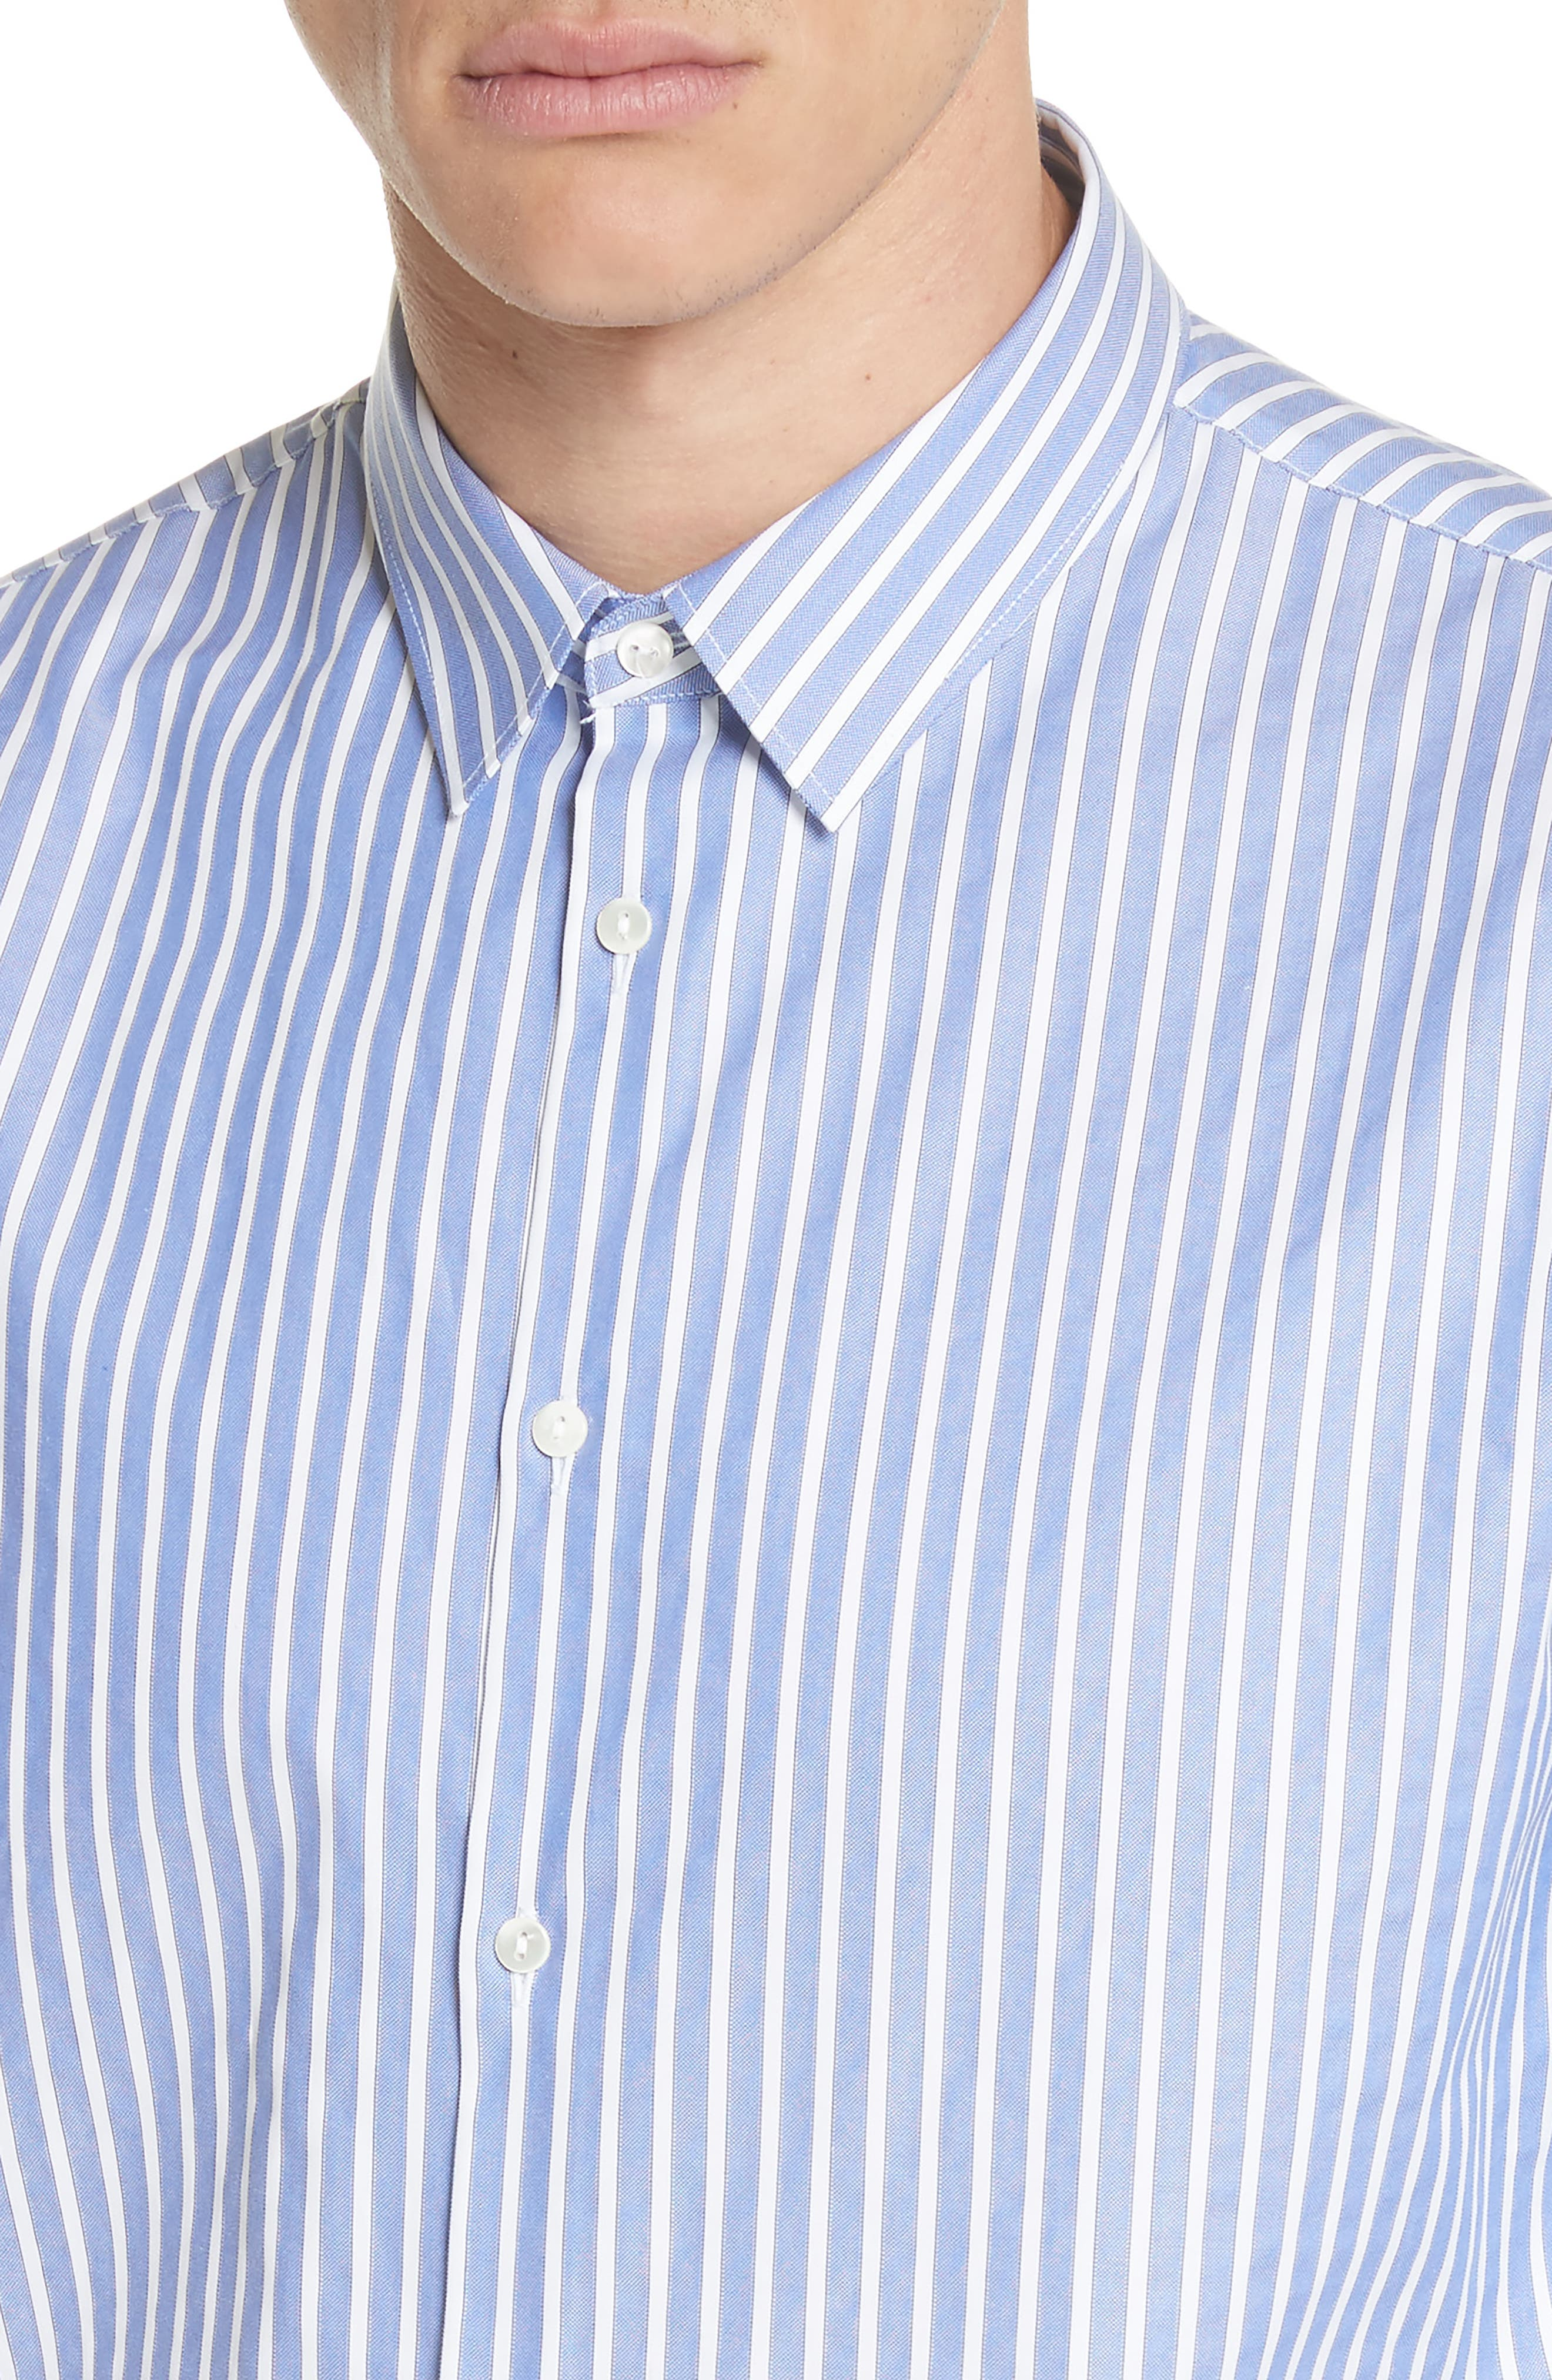 Bee Embroidered Stripe Dress Shirt,                             Alternate thumbnail 2, color,                             4869 Blue